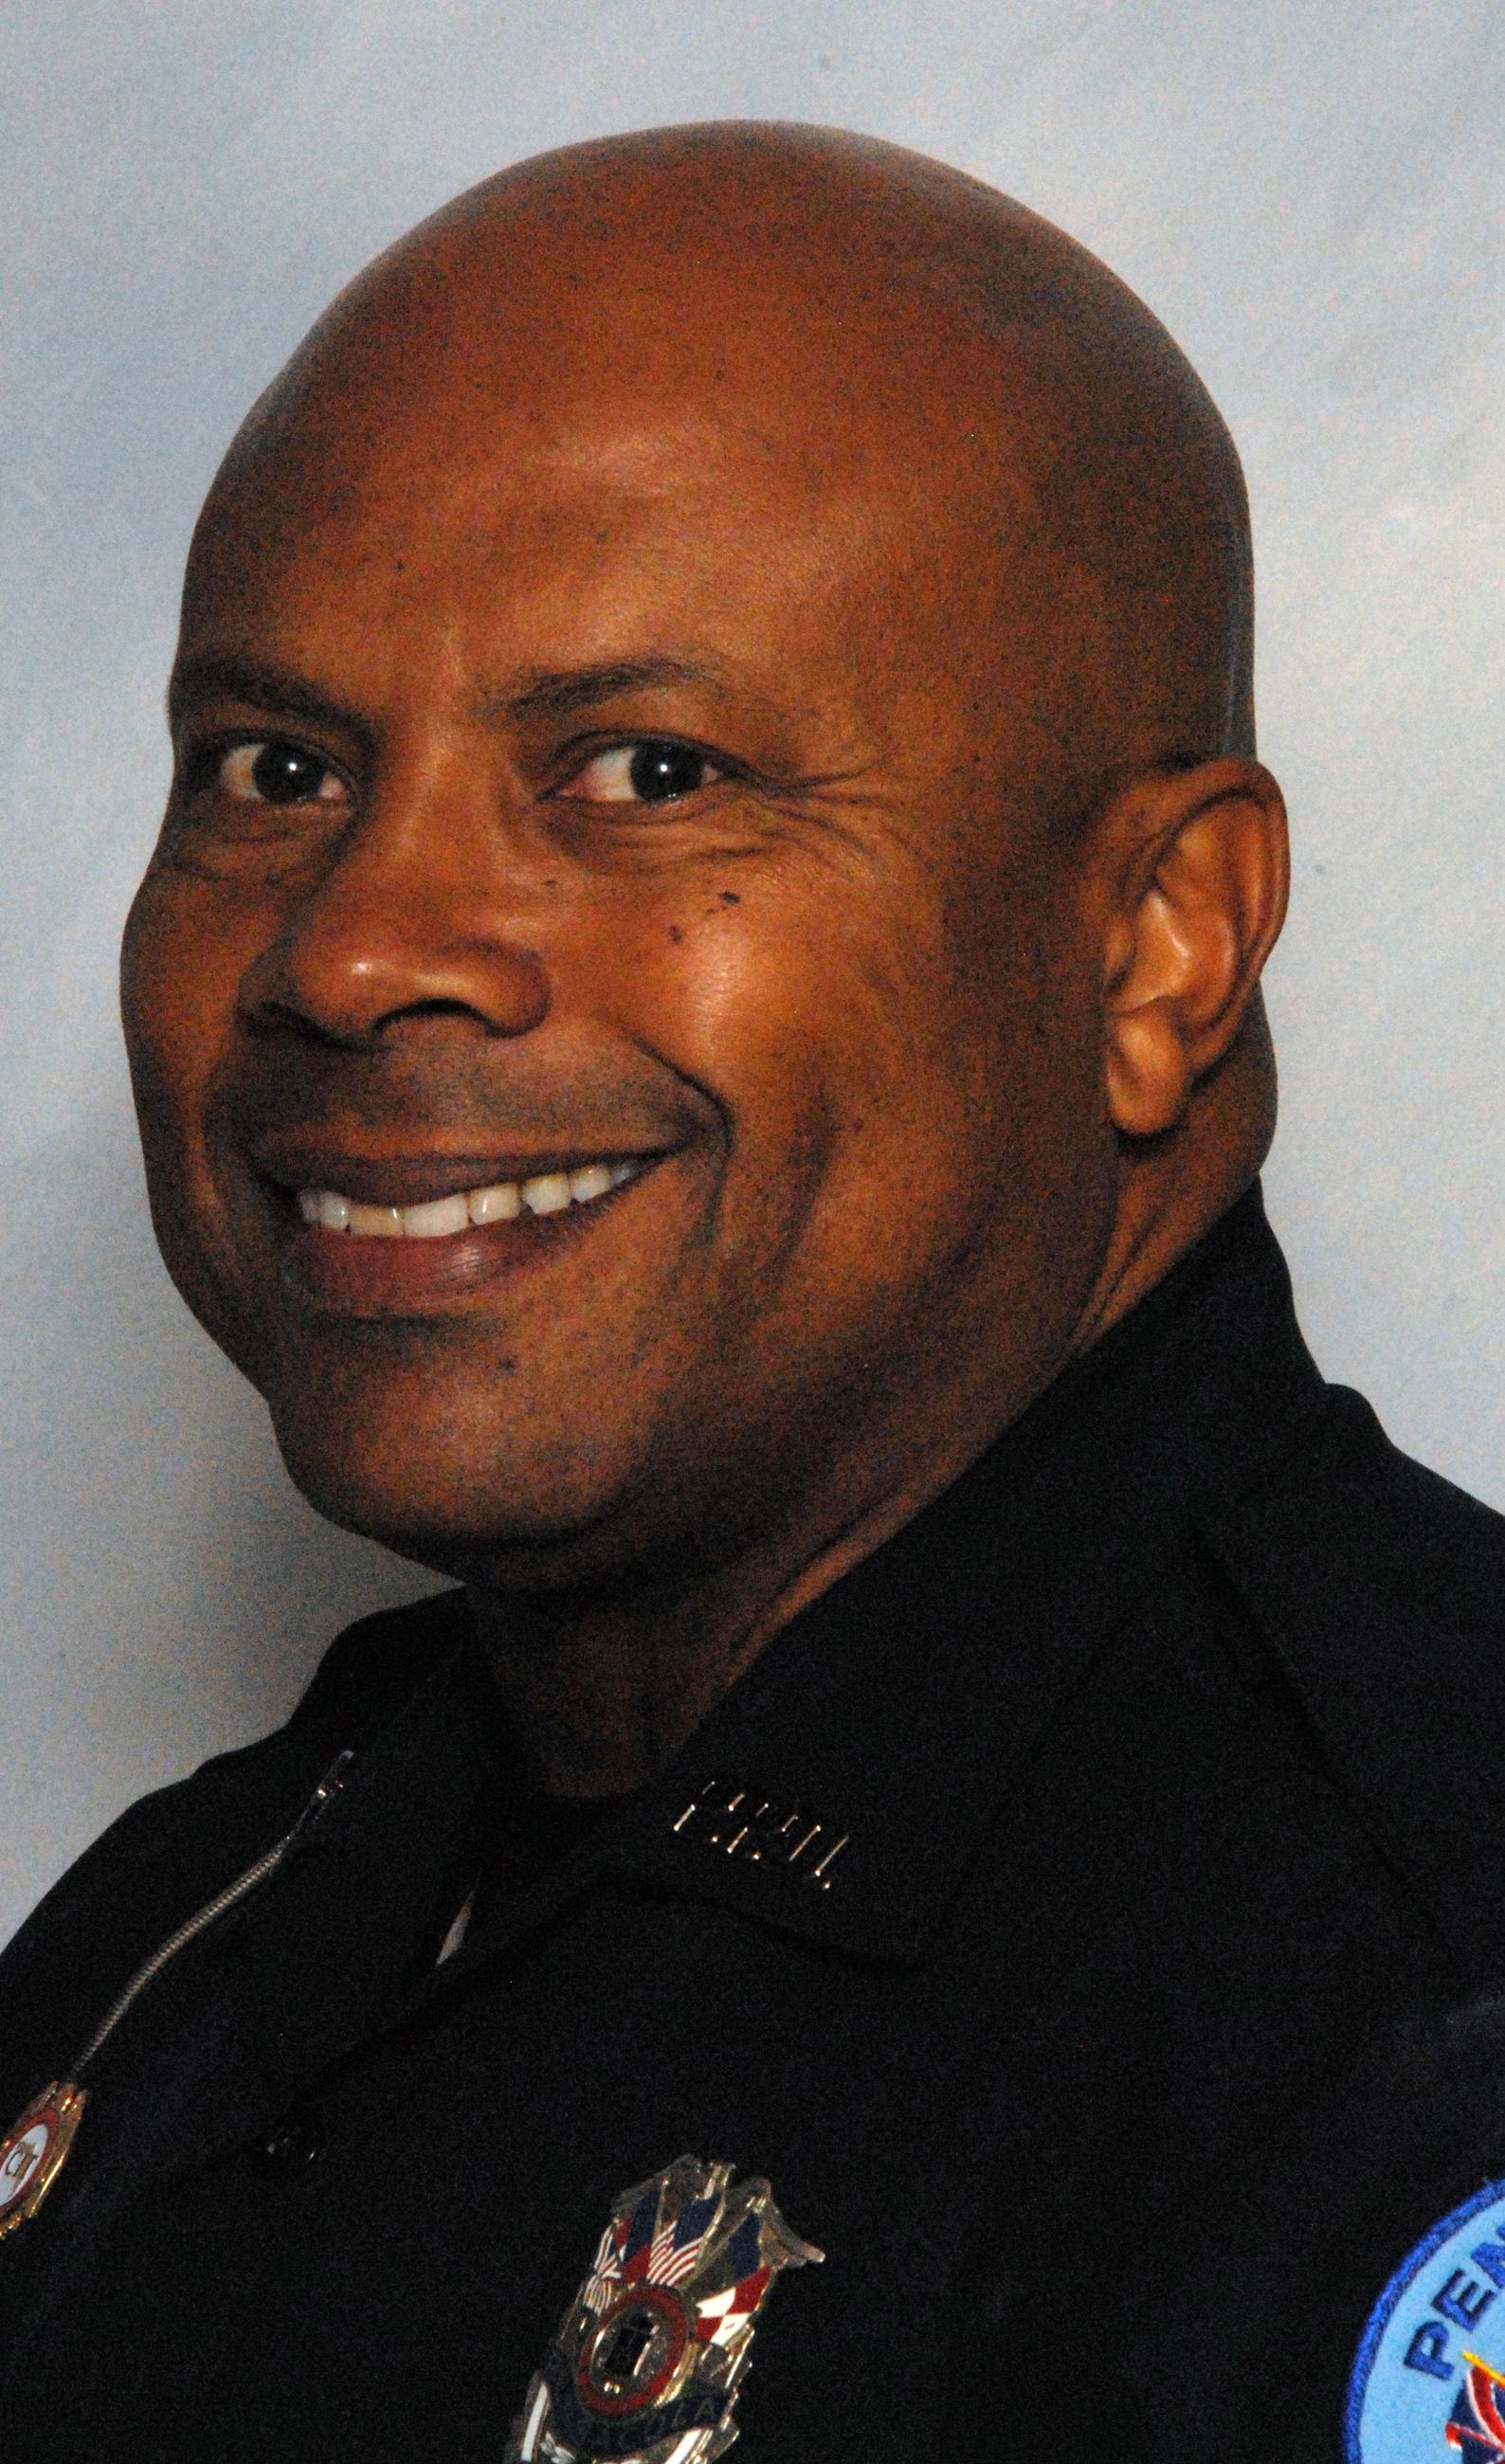 Officer Garland McKenzie